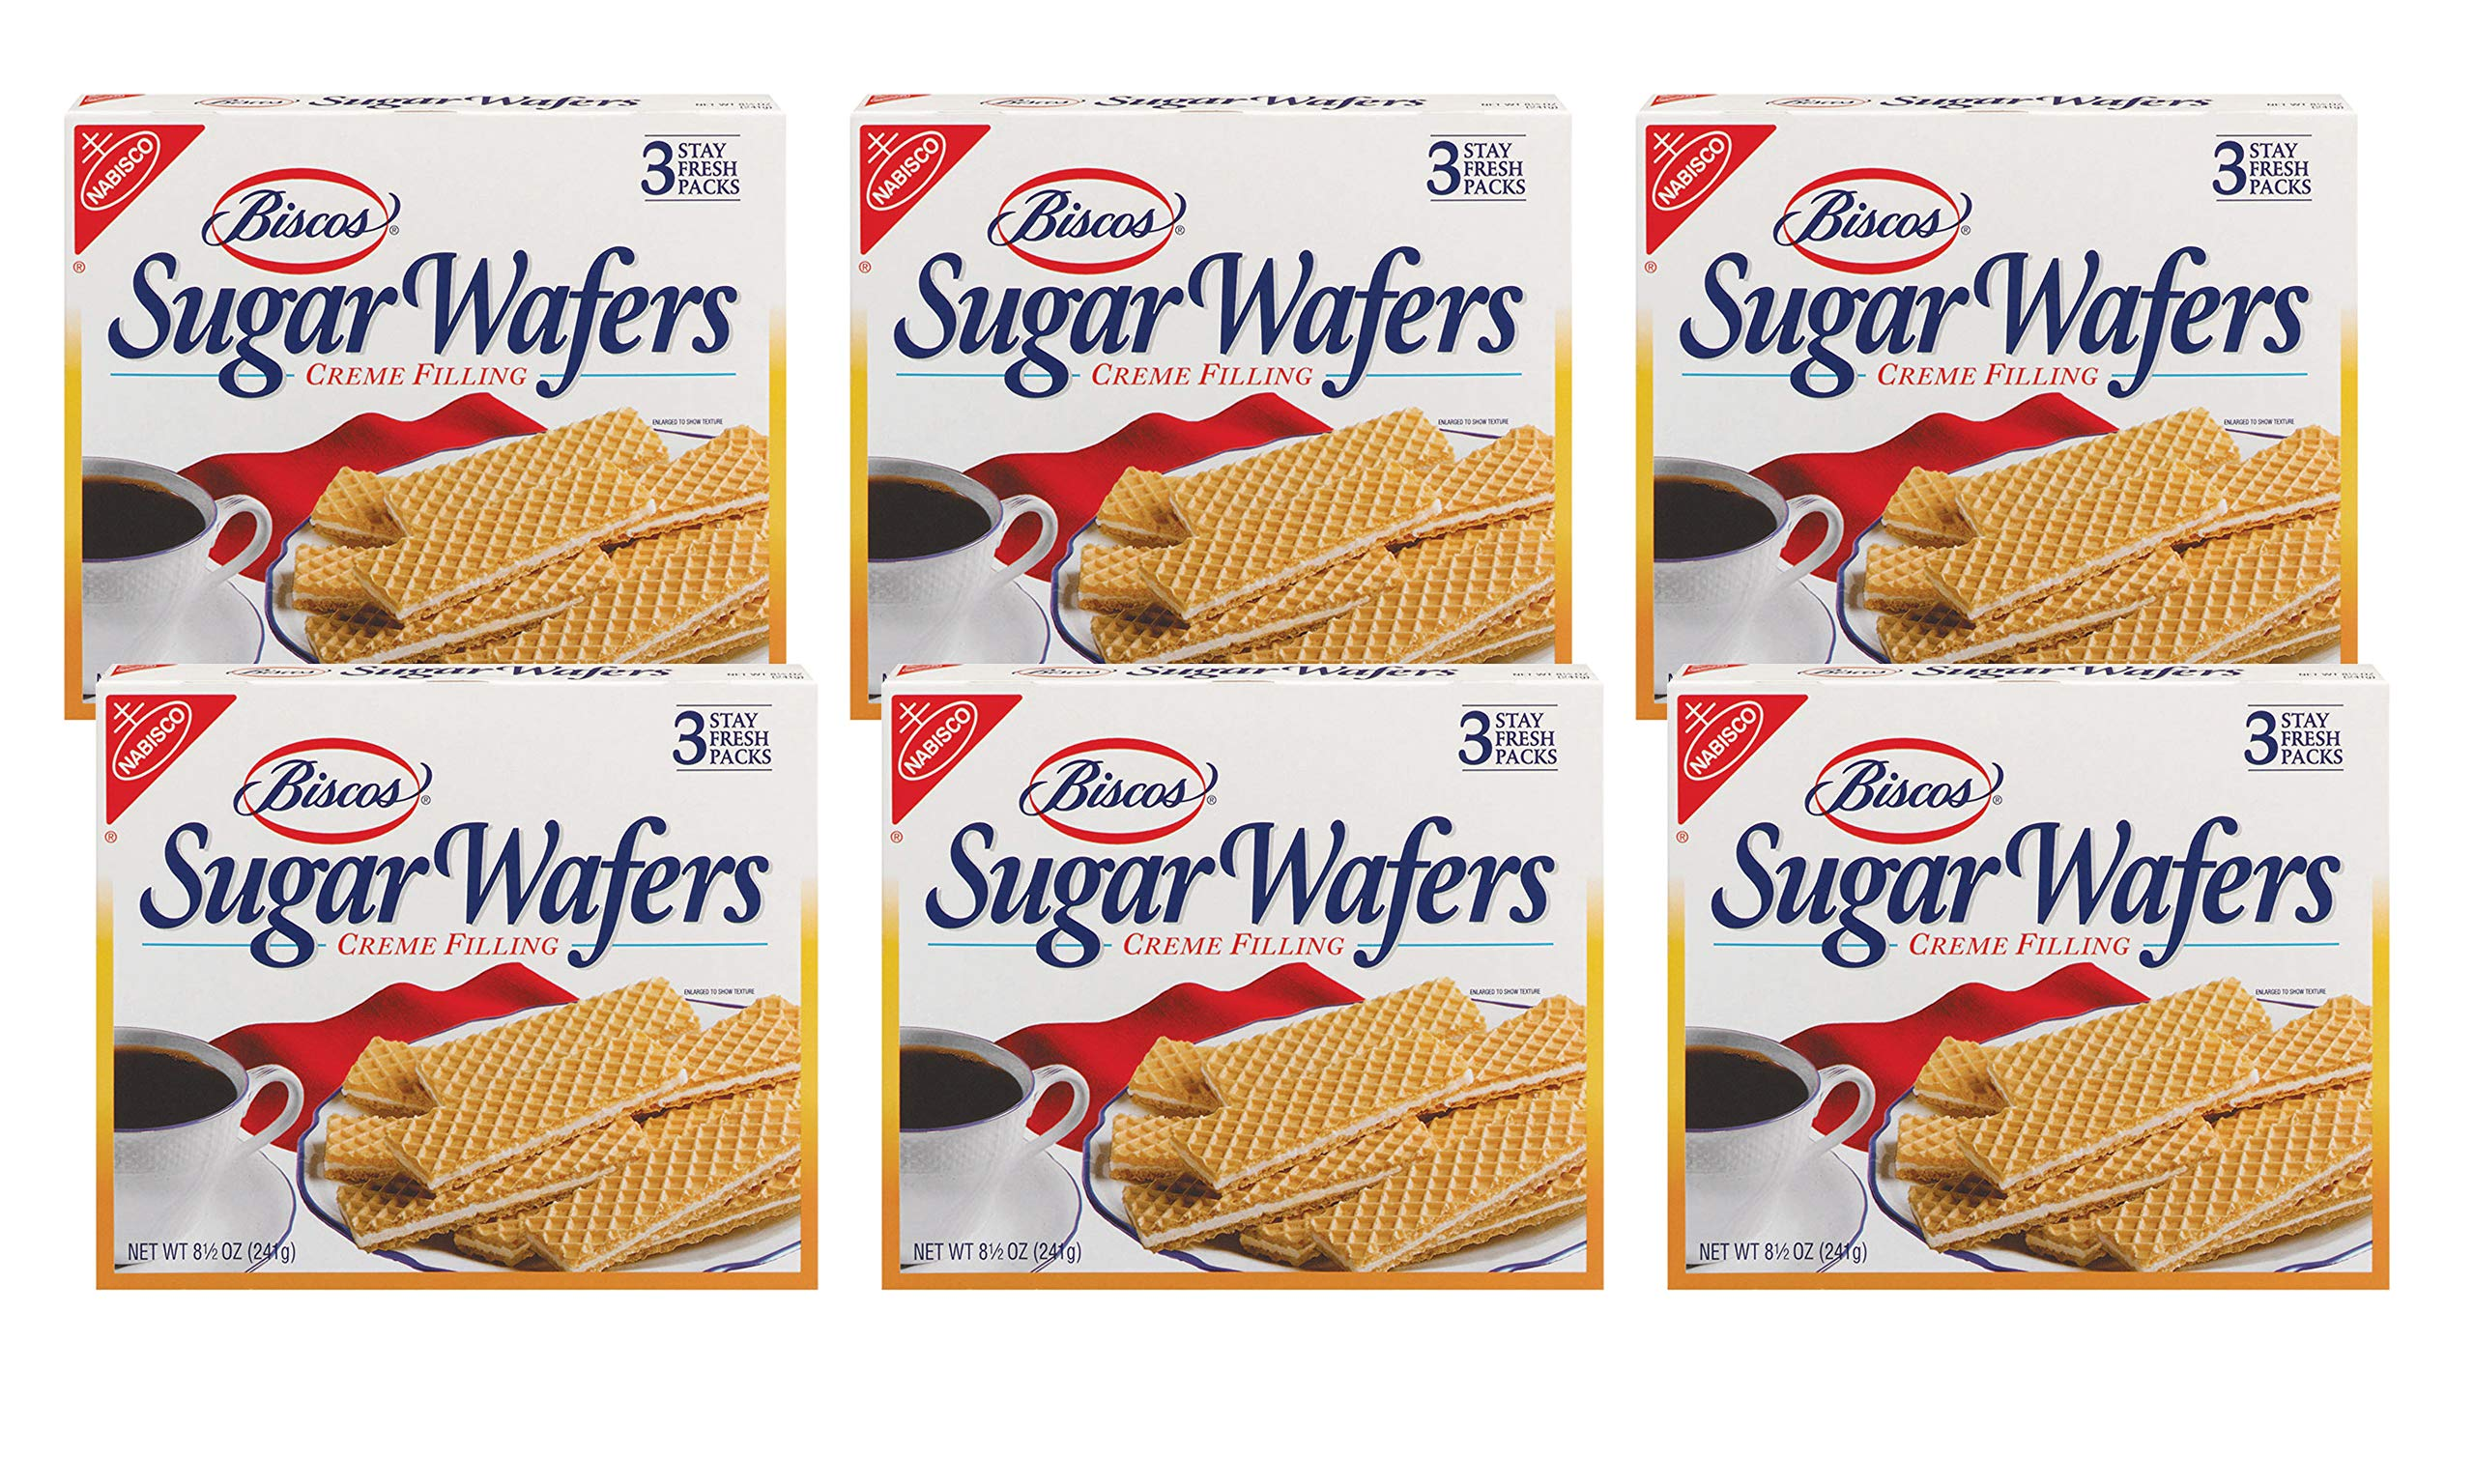 Biscos Sugar Wafers with Creme Filling, 8.5 Ounce (Pack of 6)